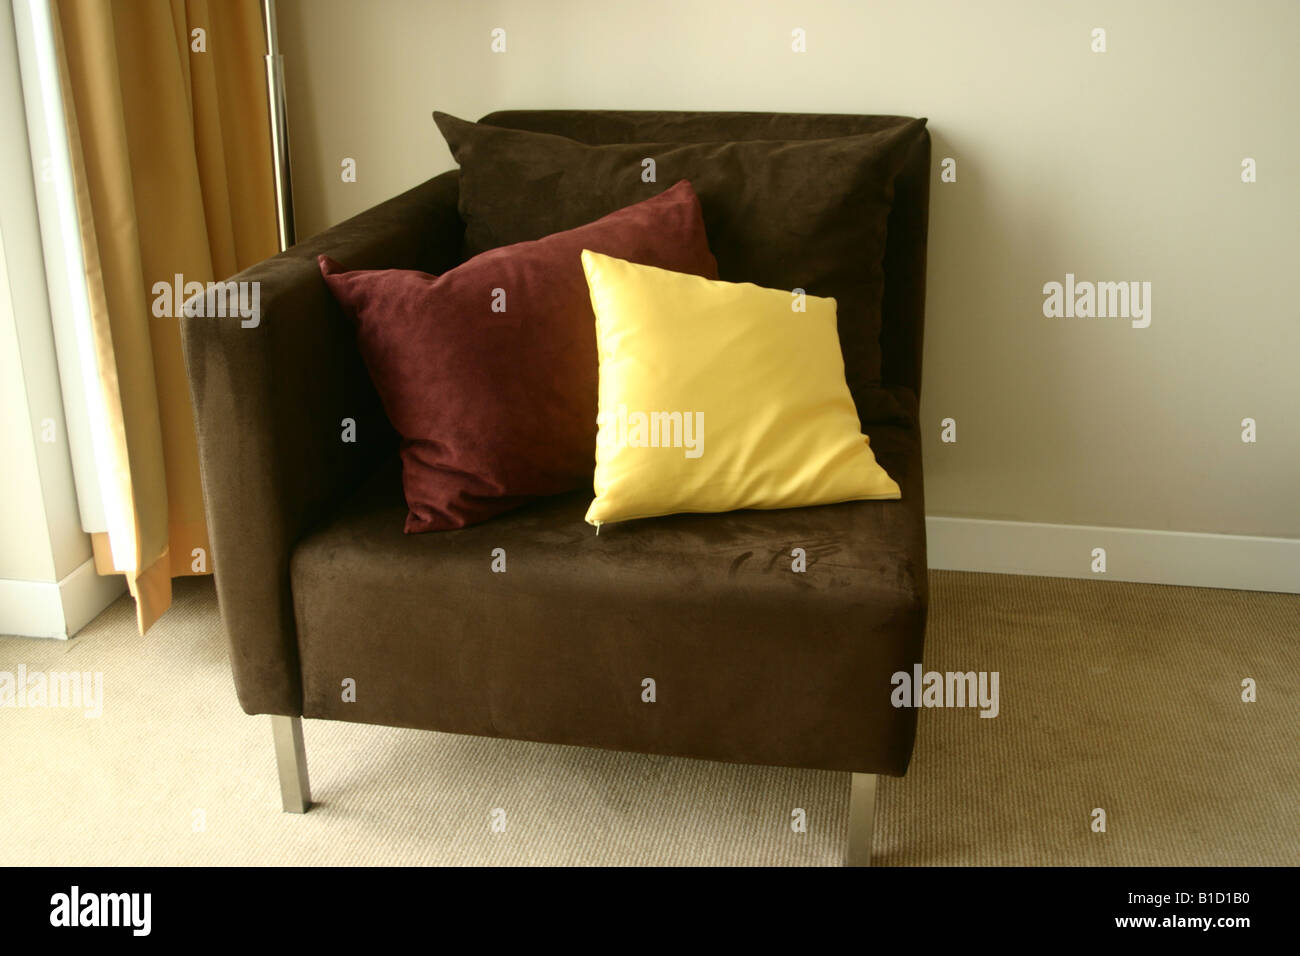 A comfy Chair in nice neutral colours. - Stock Image